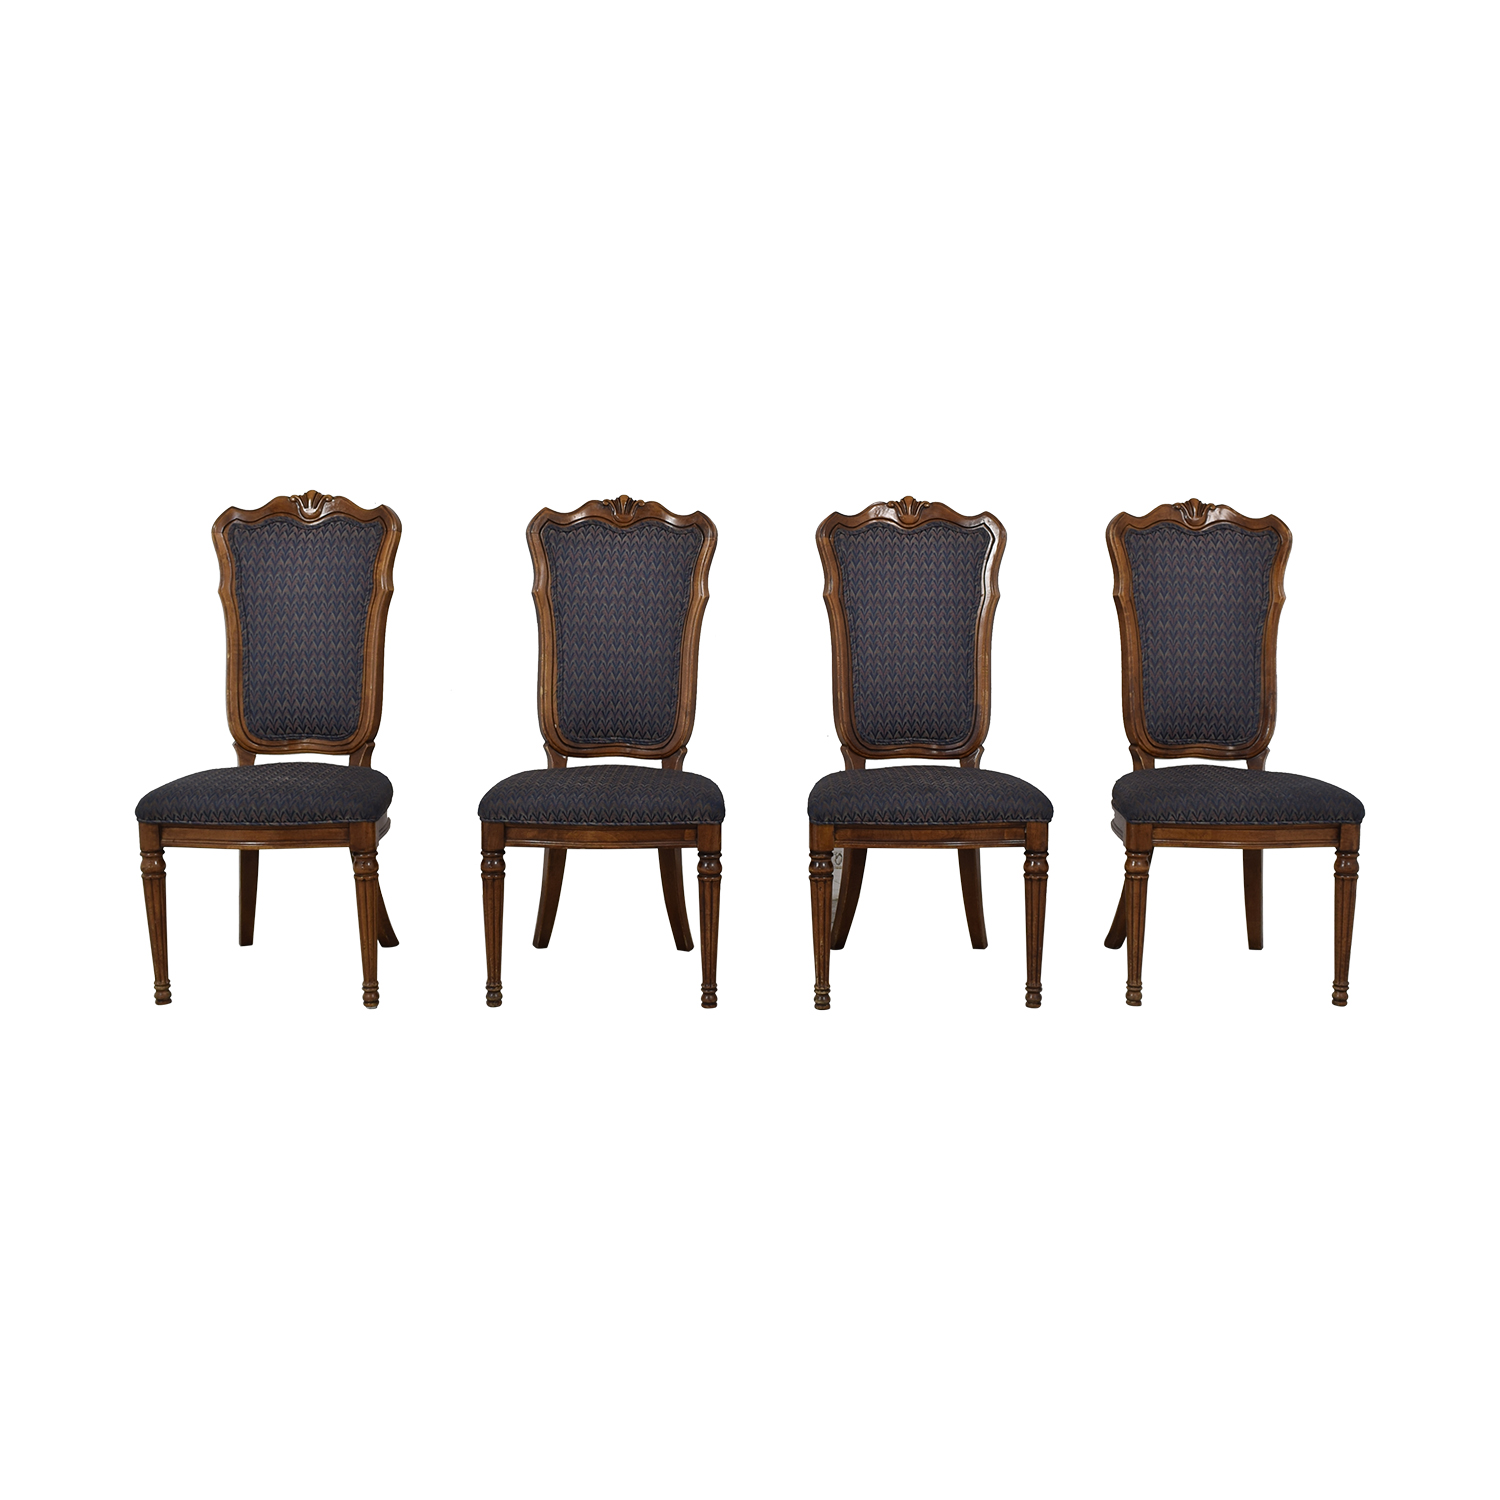 Printed Upholstered Dining Chairs dimensions